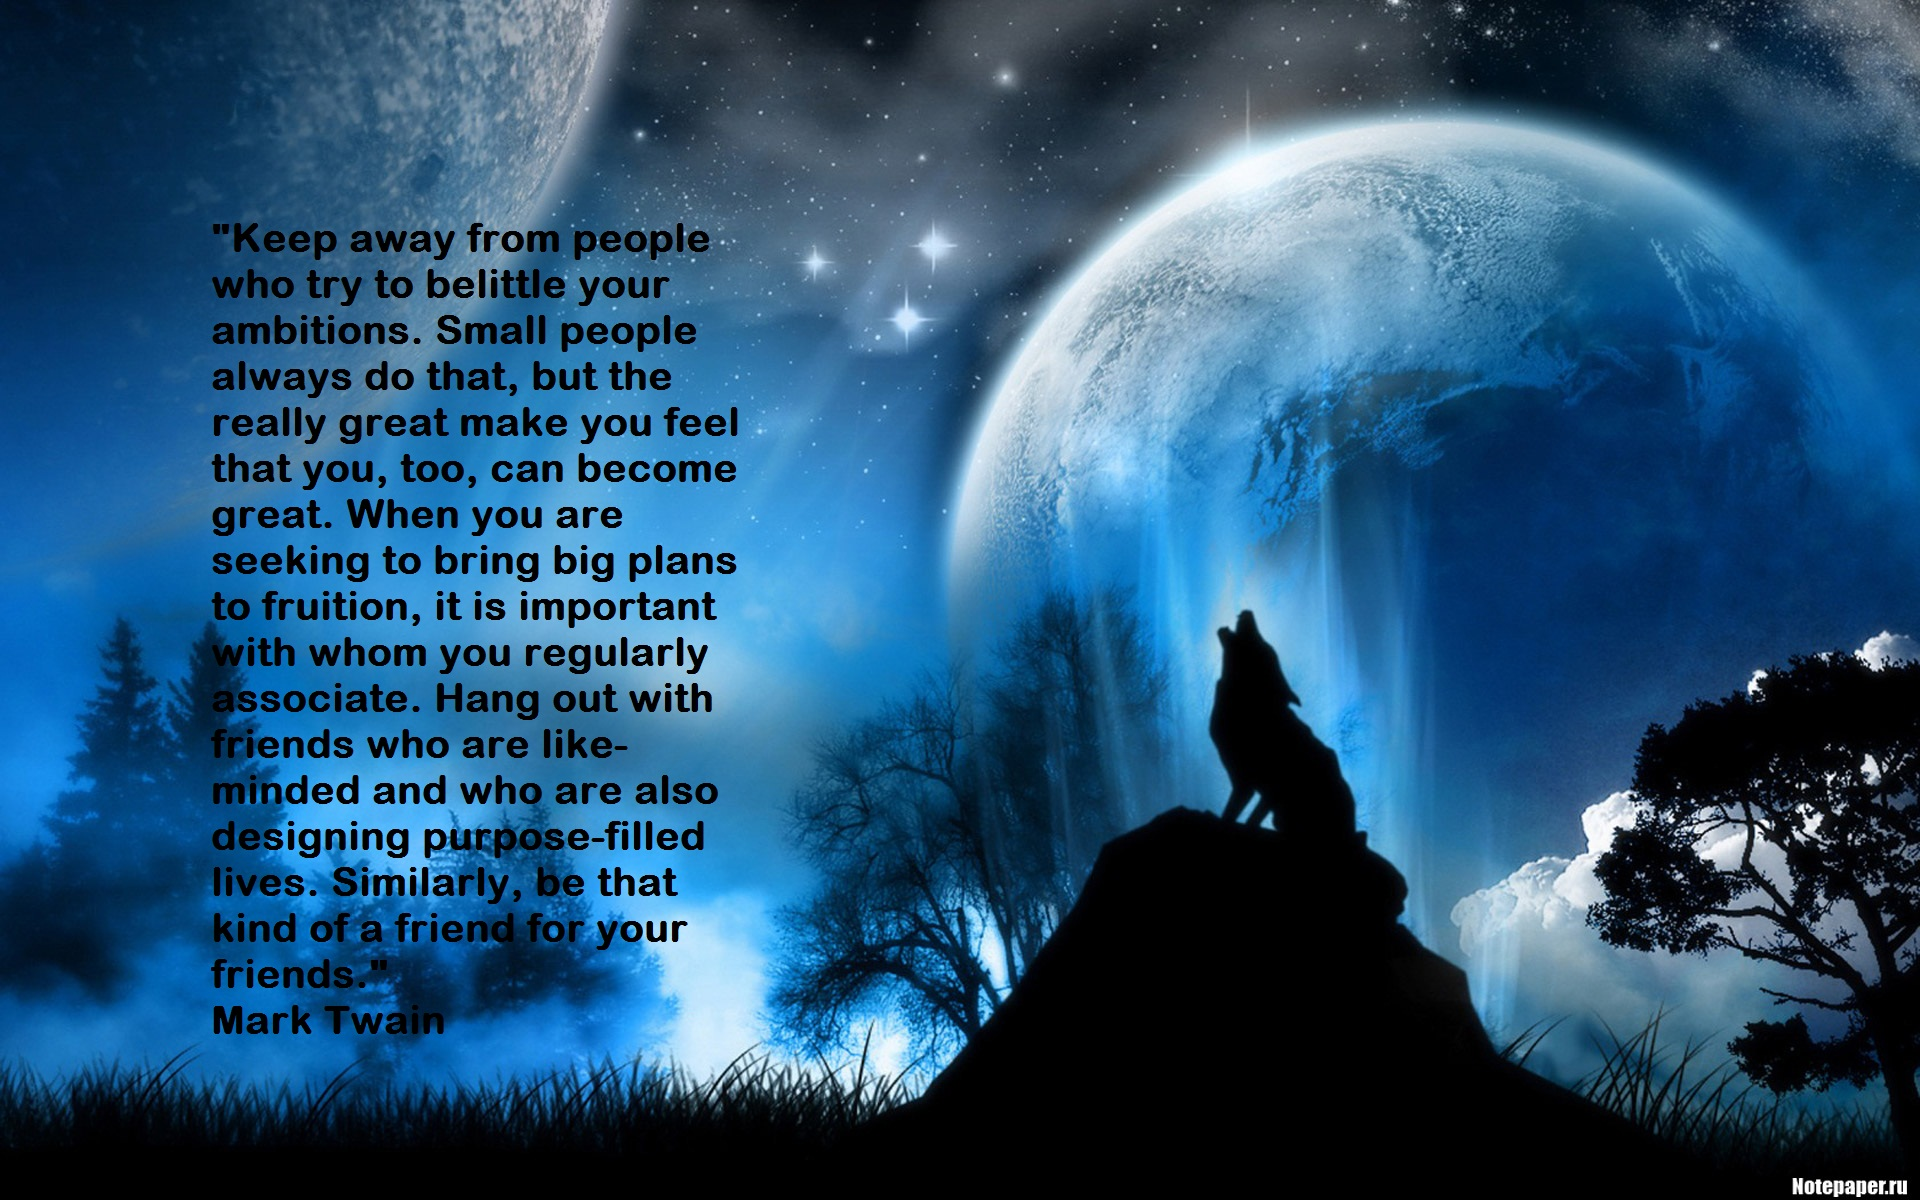 Overcoming Depression Quotes Manifesting Your Big Dreams Into Reality To Shout Them From The